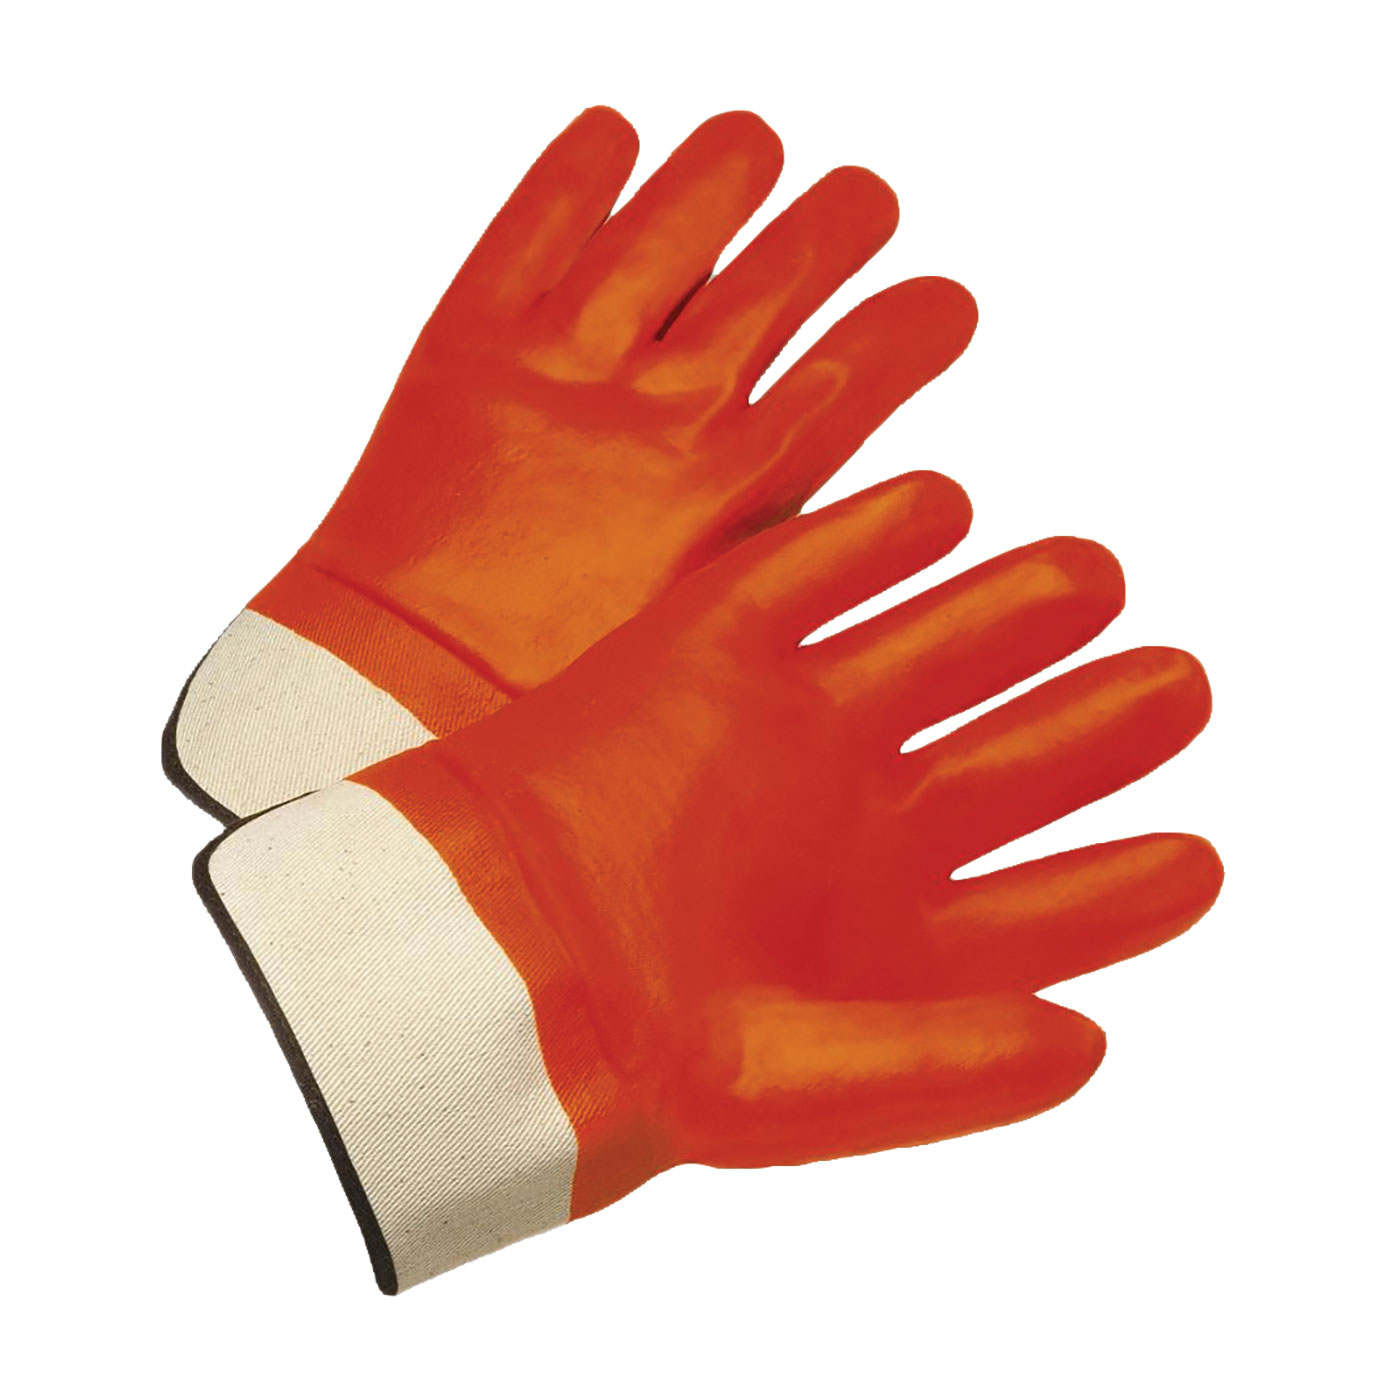 PVC Dipped Glove with Jersey Liner and Smooth Finish - Rubberized Safety Cuff, Hi-Vis Orange, L